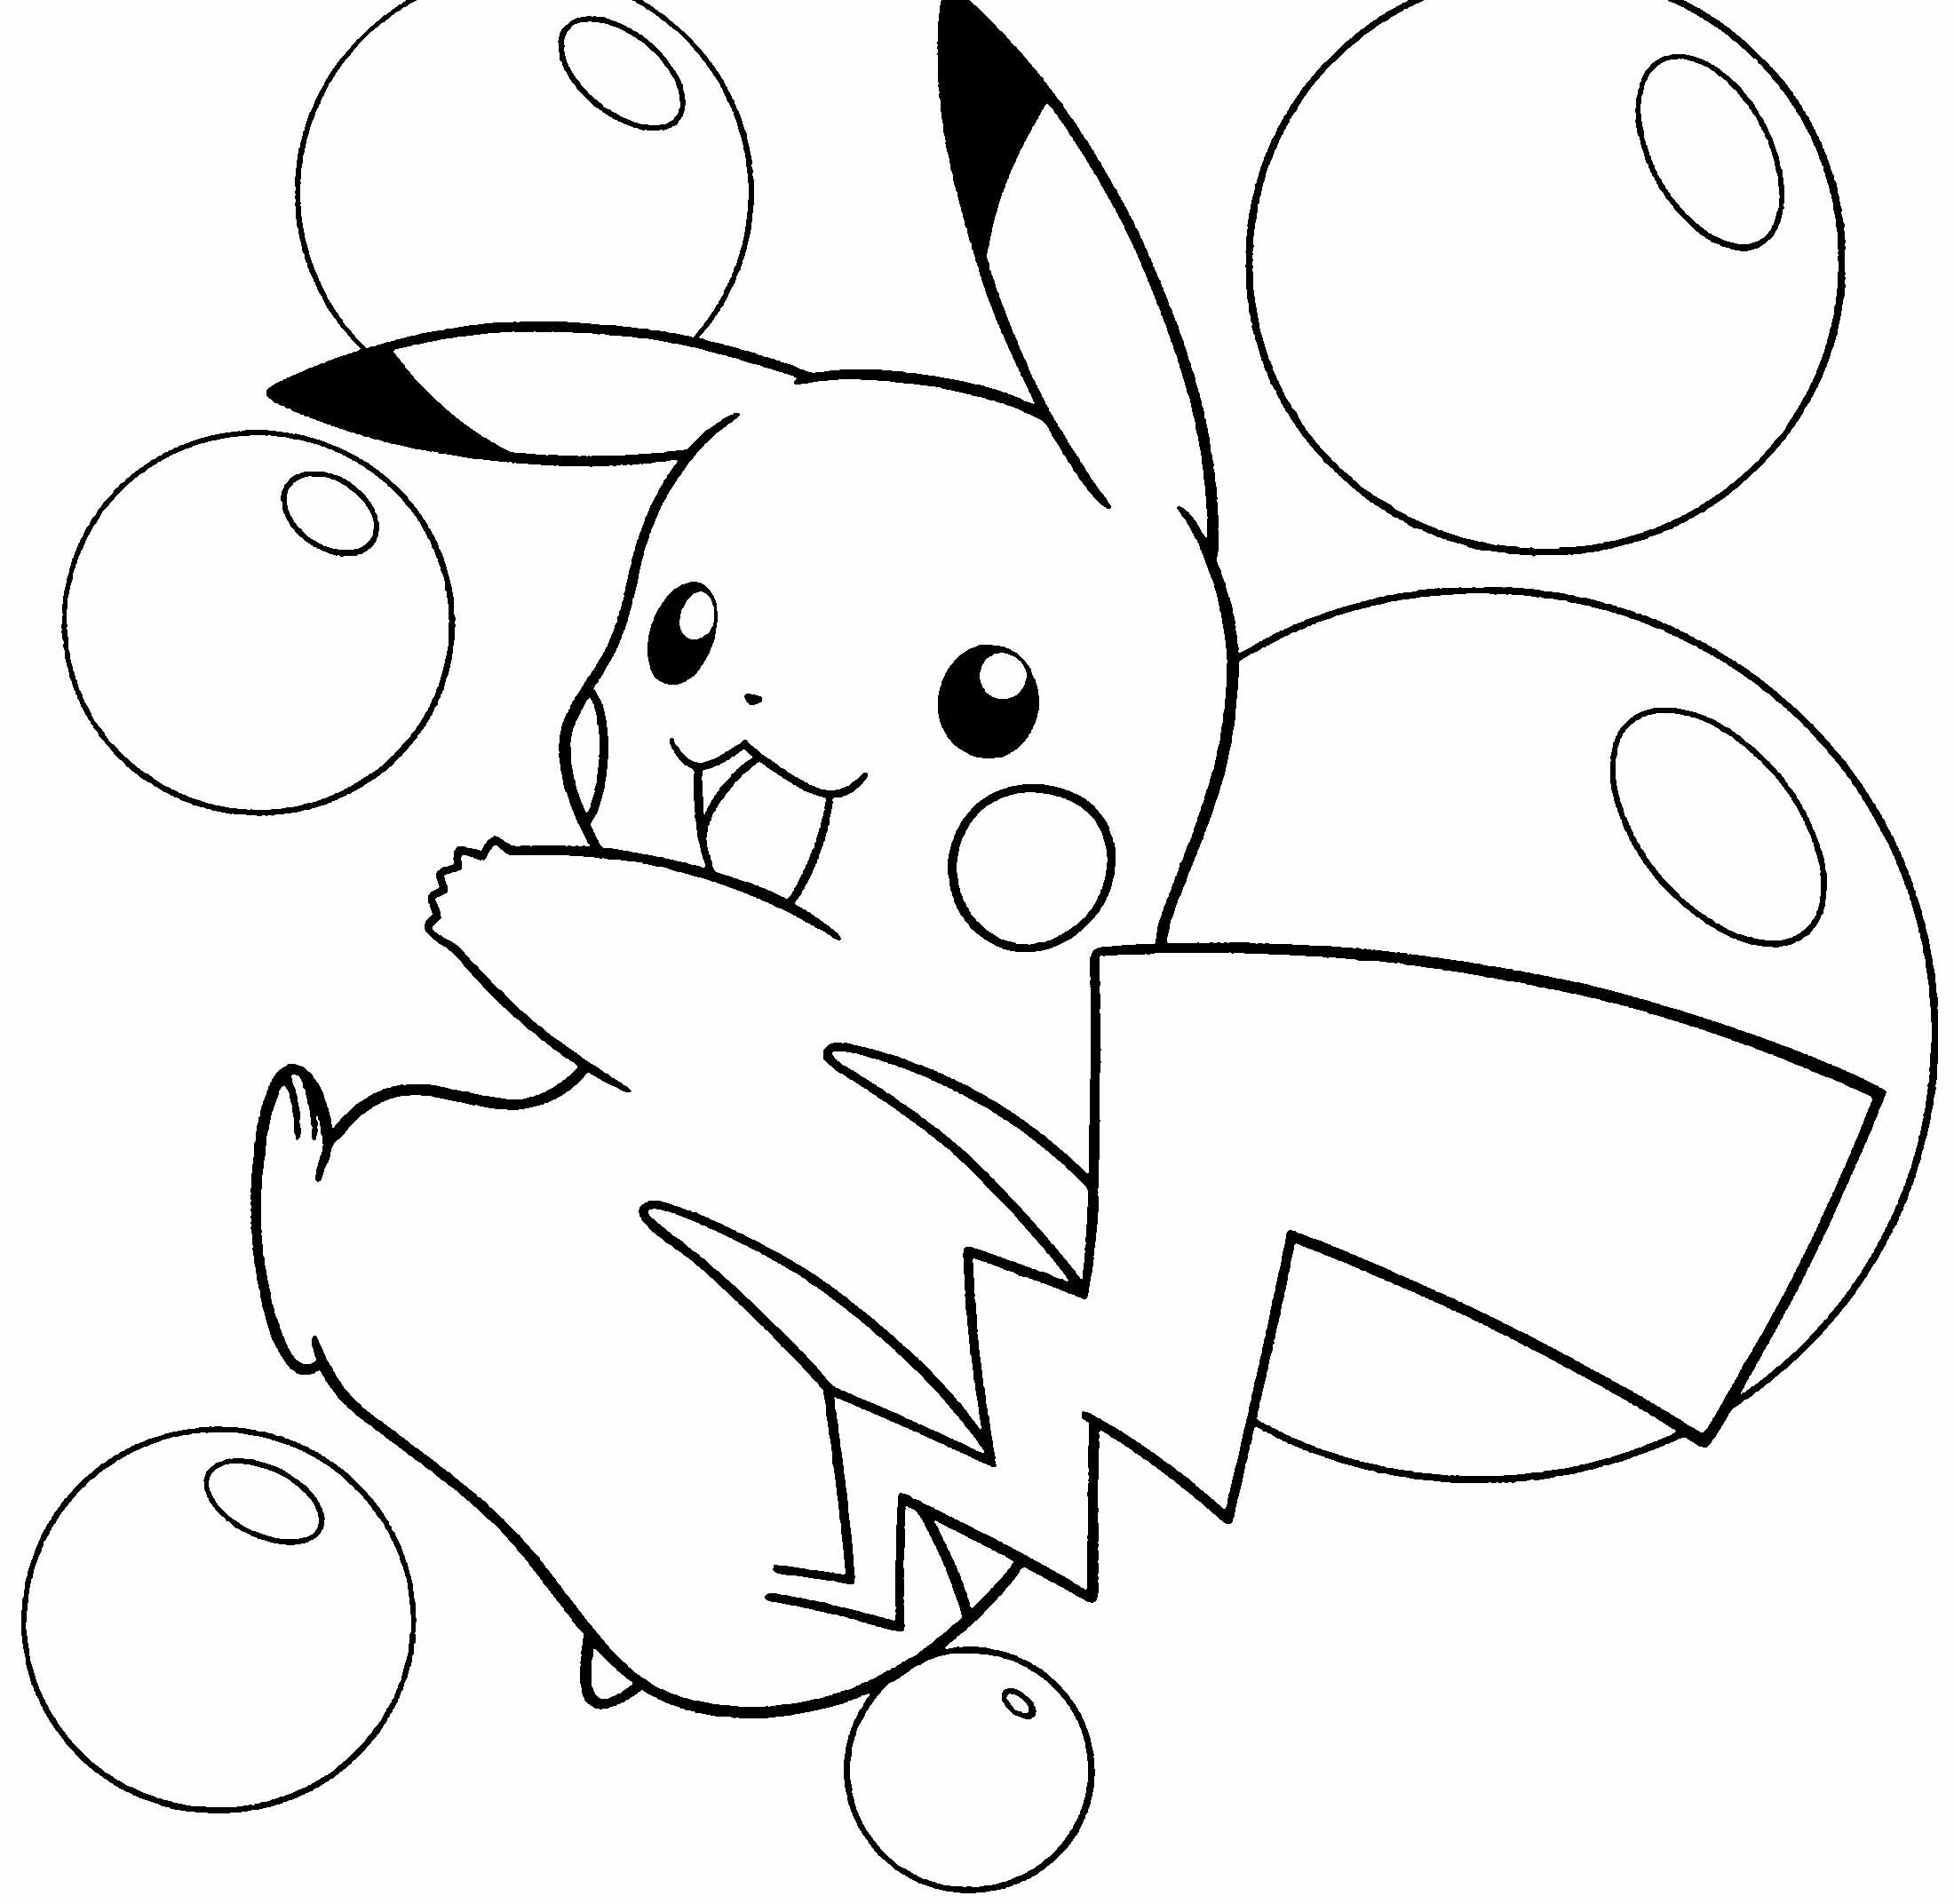 Pokemon happy birthday coloring pages - Pikachu Coloring Pages Pokemon Pikachu Coloring Pages 1